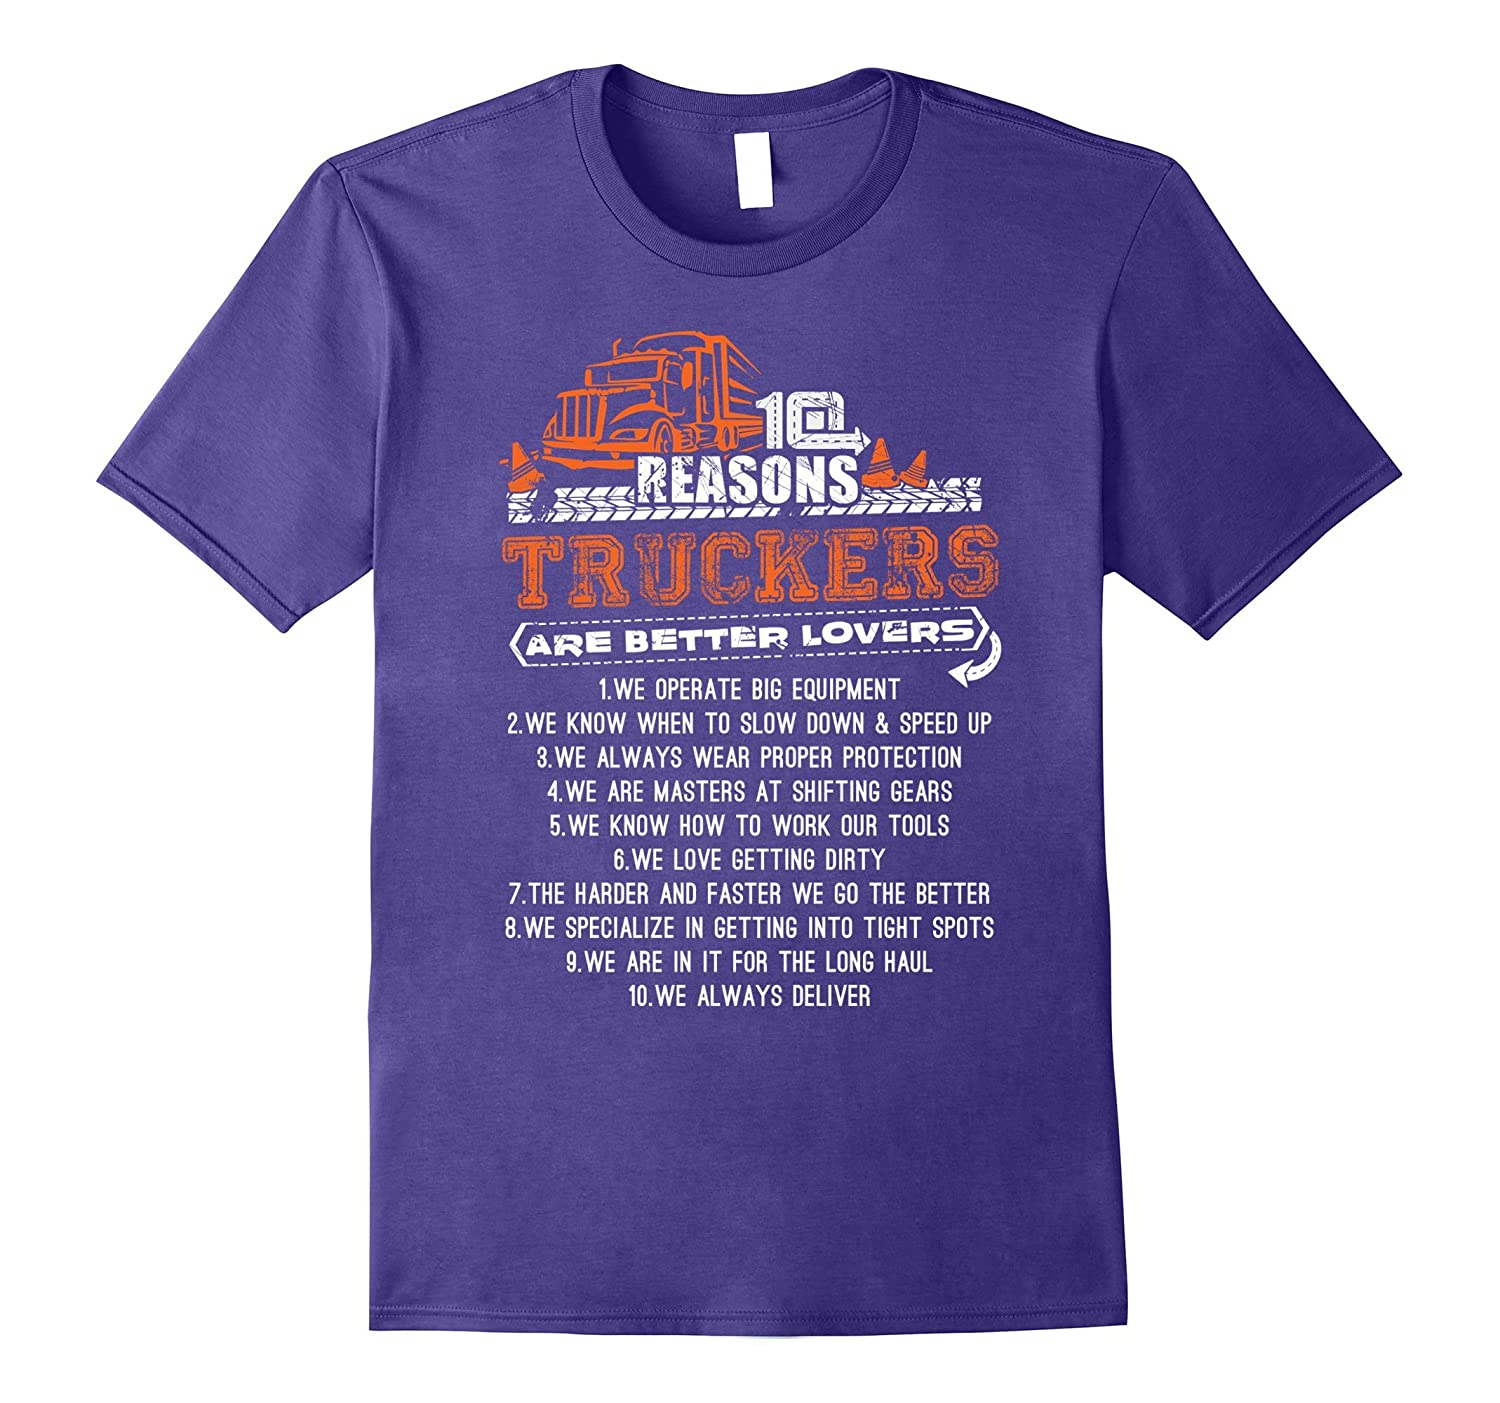 Truck Driver Shirt - 10 reasons Truckers are Better Lovers-Vaci